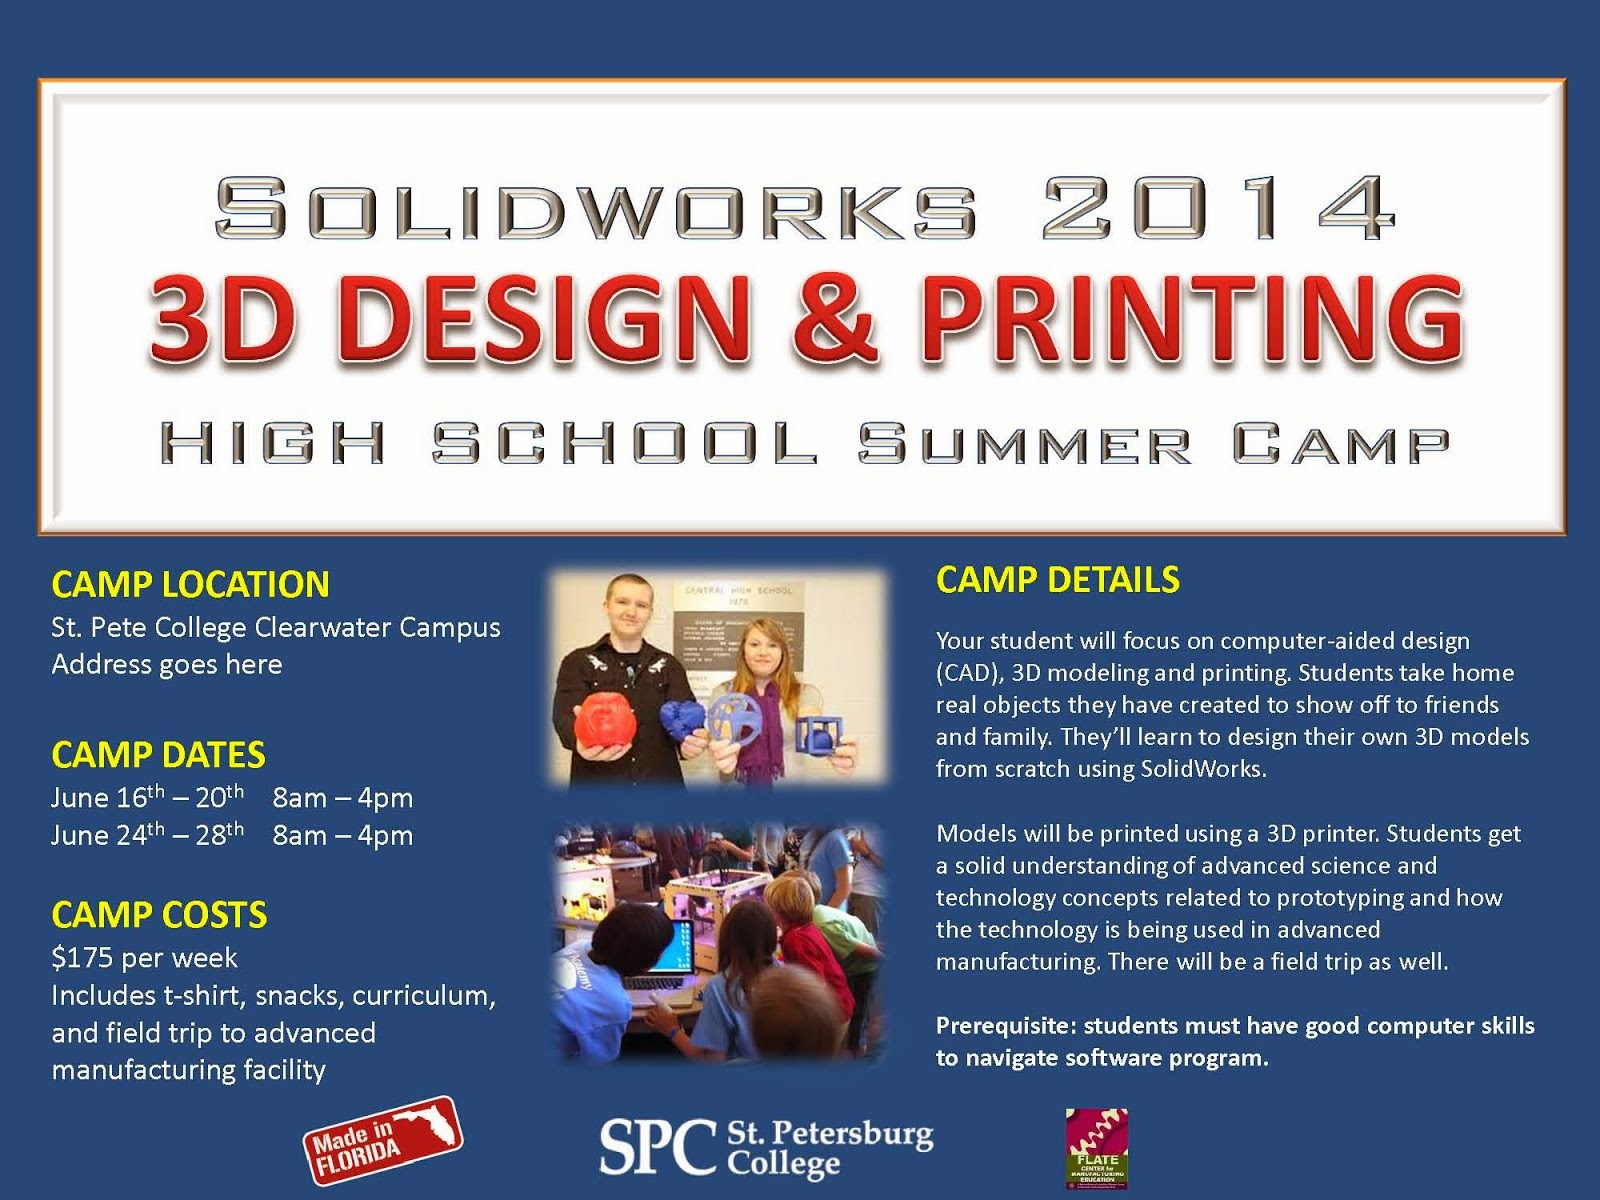 3D Design & Printing High School Summer Camp